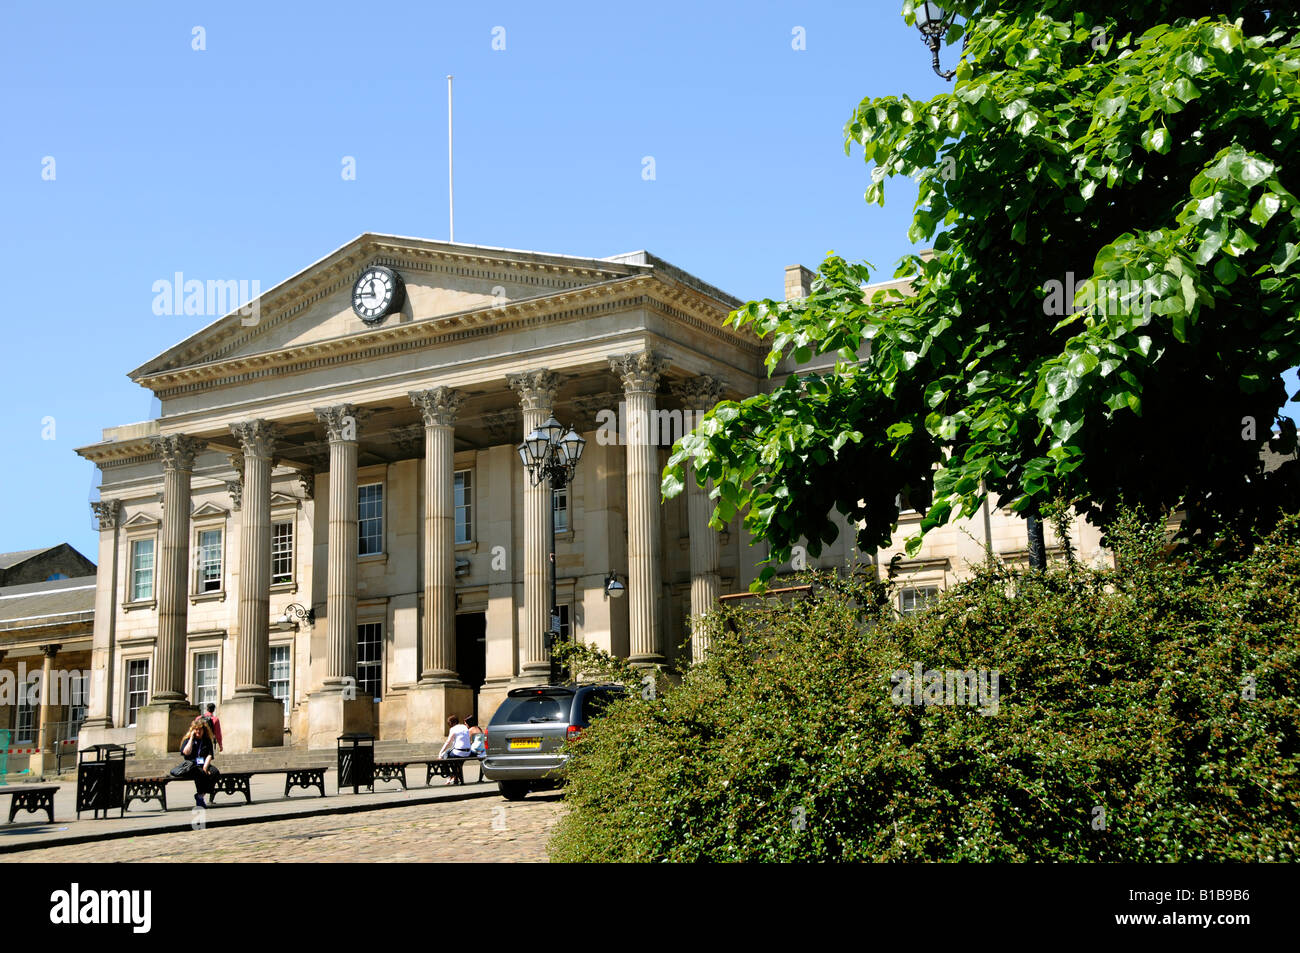 The classical colonnade and portico of the grand entrance of the Victorian railway station seen beyond foliage in - Stock Image